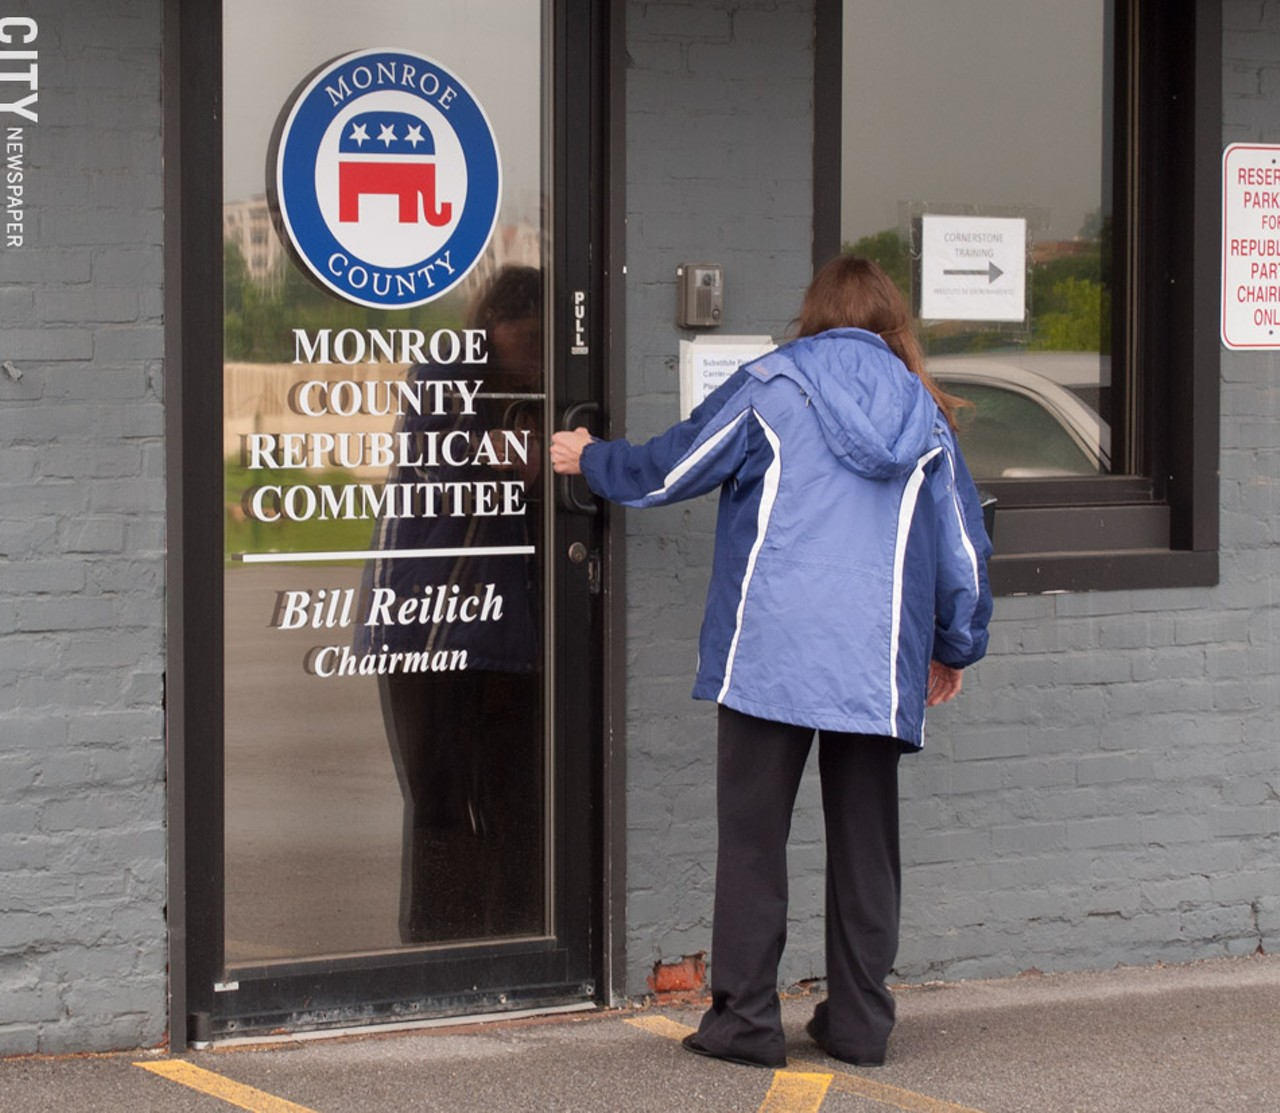 Rochester's Republican headquarters offices were the focus on protests over the proposed cuts to Medicaid funding